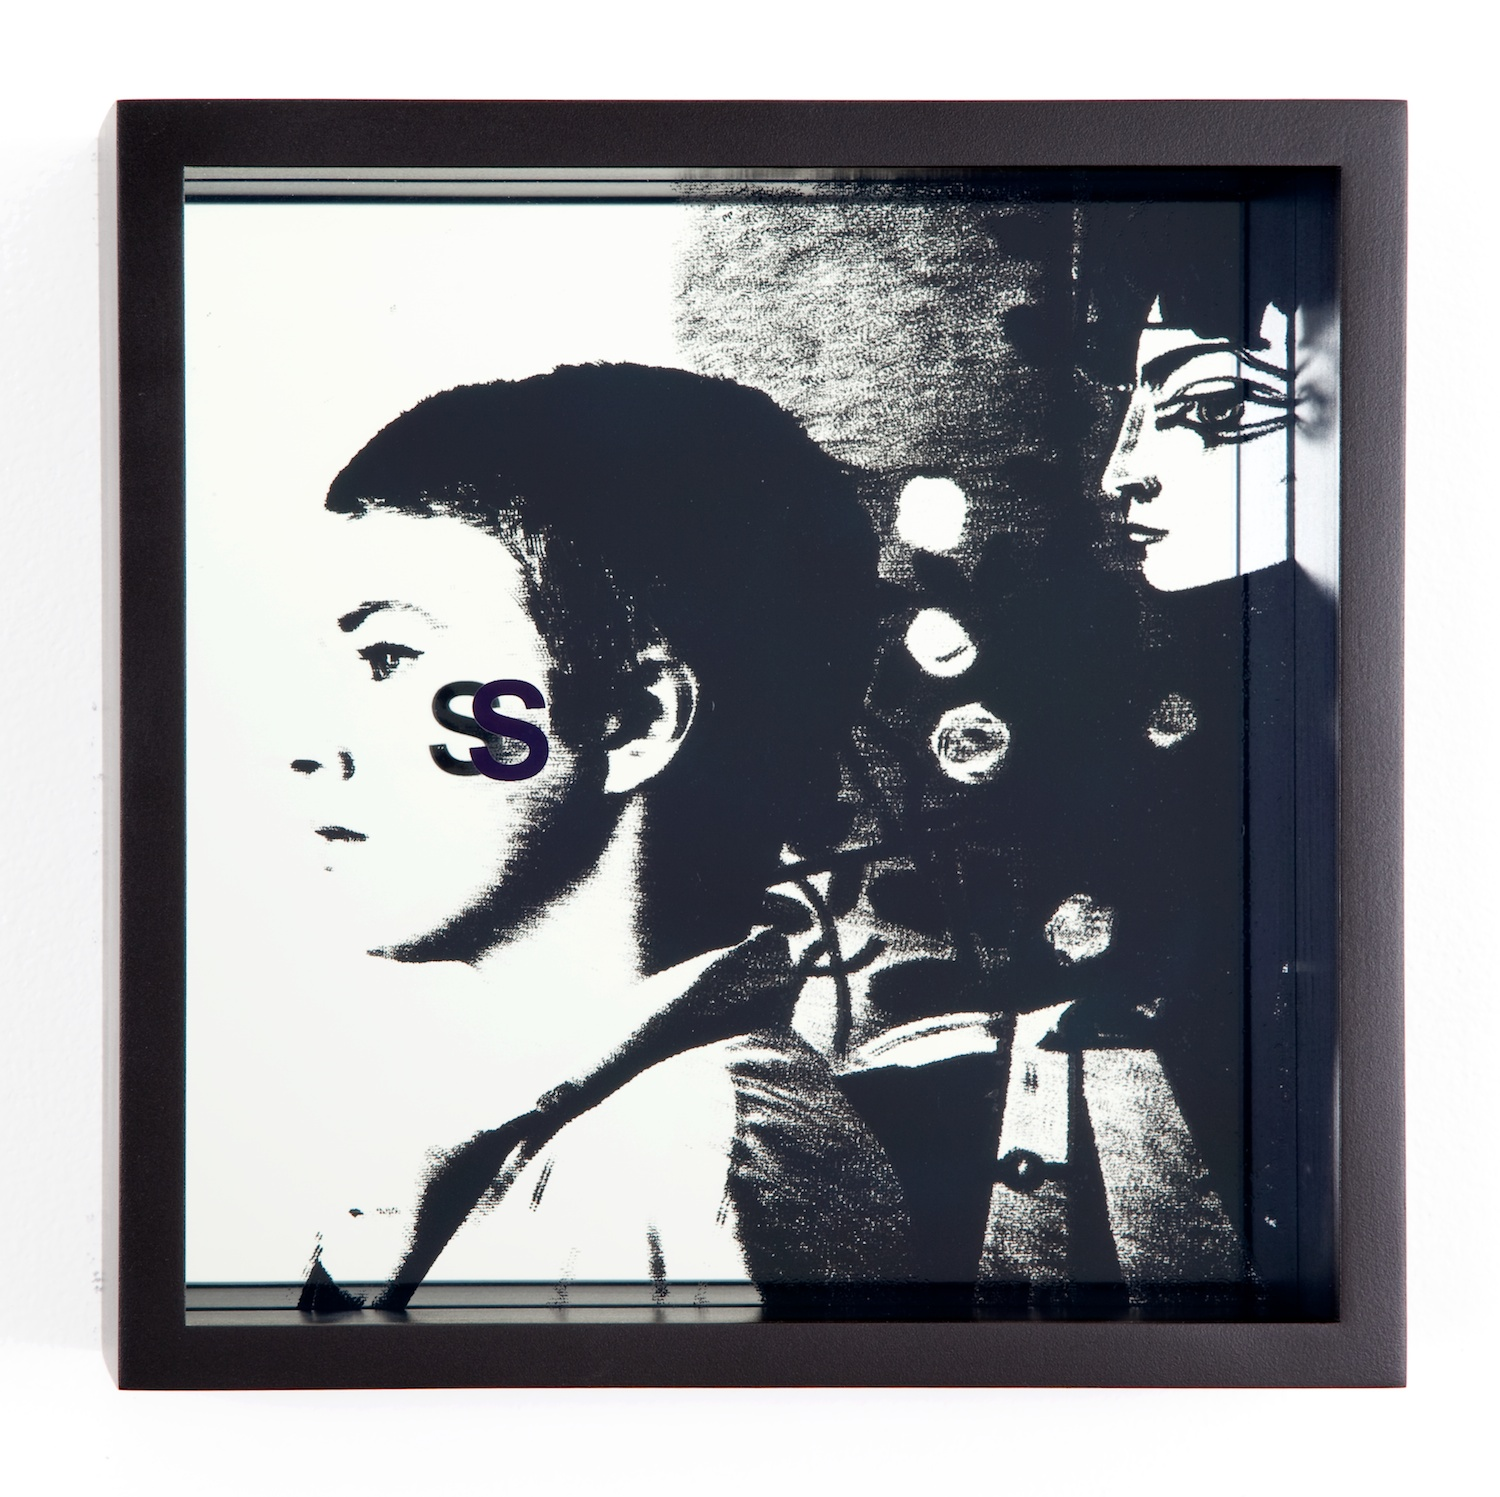 Adam Pendleton  System of Display, S (Sullied/Jean-Luc Godard, Breathless, 1960)  2011 Silkscreen on glass and mirror 9 ⅞h x 9 ⅞w x 3d in AdamP014